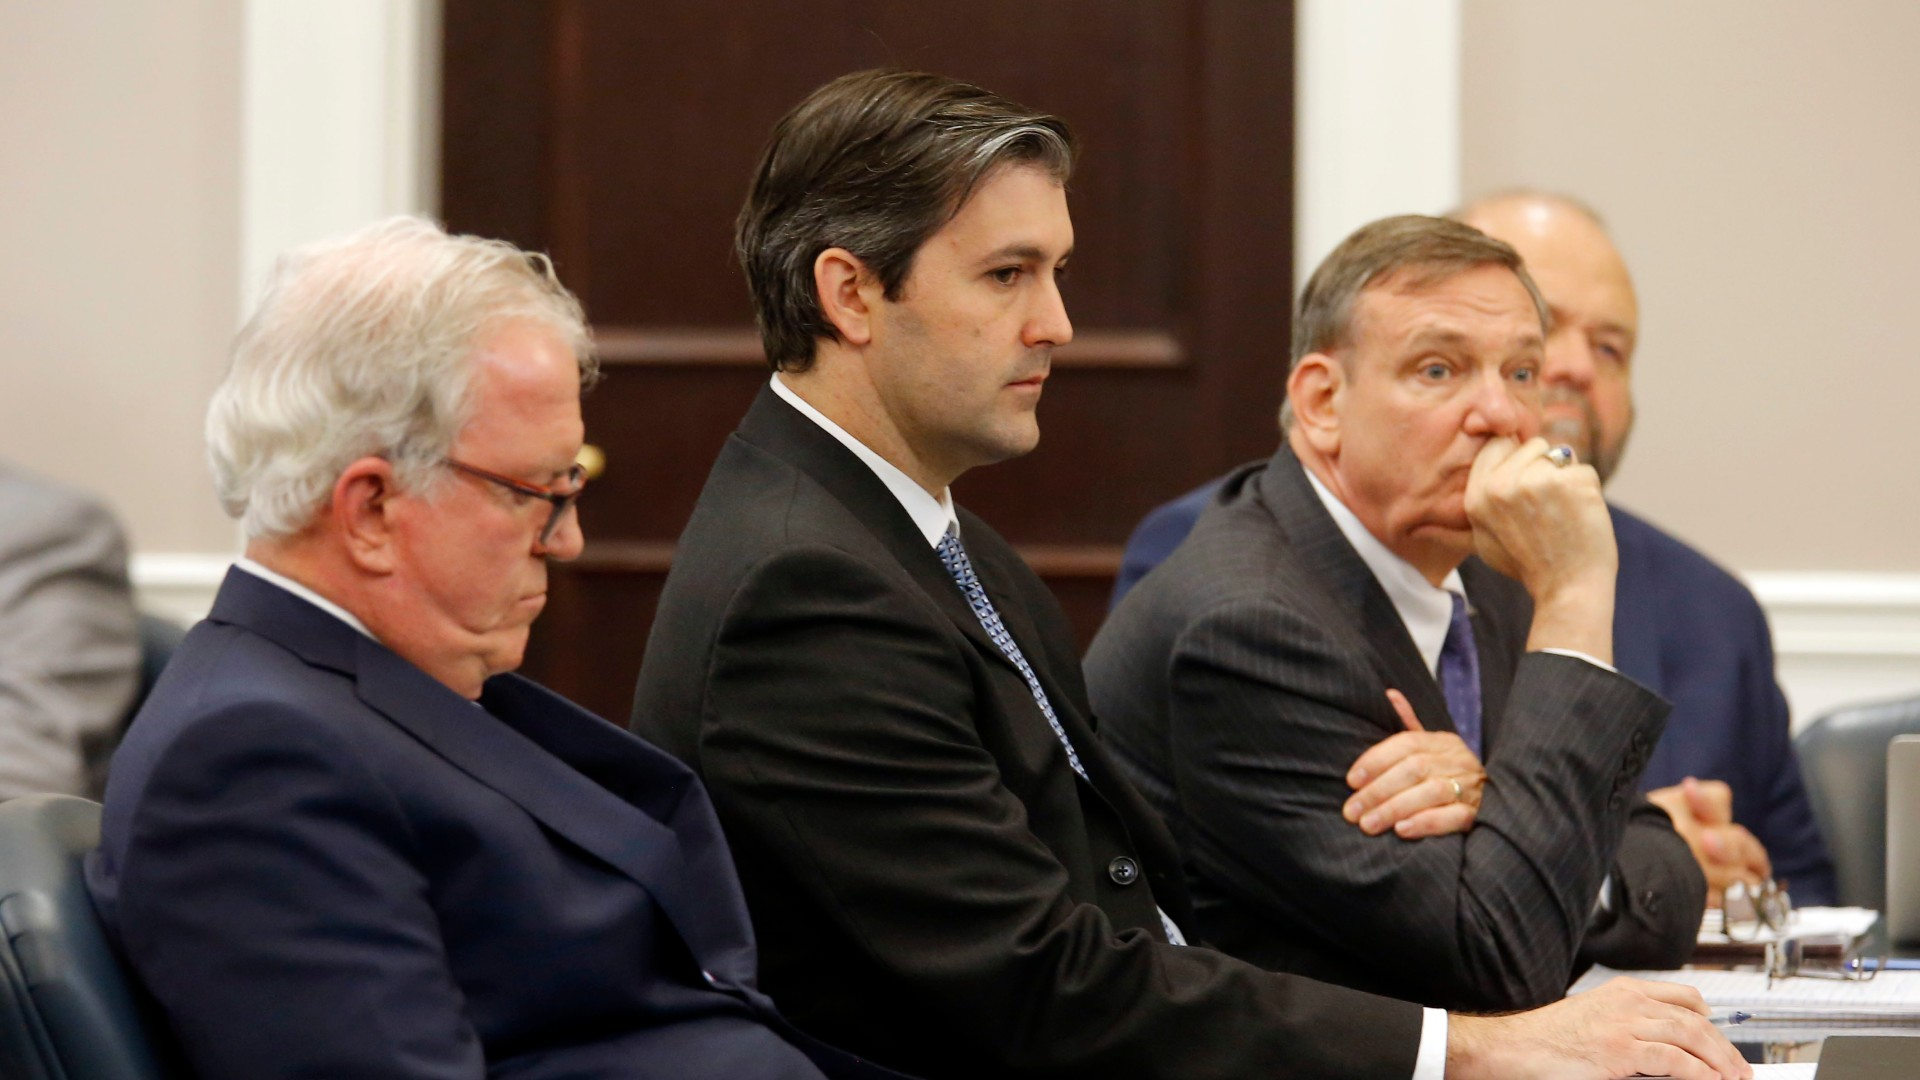 In this Dec. 5, 2016 file photo, defense attorneys Andy Savage, left, Don McCune, and Miller Shealy, right, sit around former North Charleston police officer Michael Slager at theCharleston County court in Charleston, S.C. Slager, who is serving 20 years in prison for killing an unarmed Black man who was running away from a traffic stop, said his lawyer never told him about a plea offer from prosecutors that could have cut years off his sentence and is asking for a new sentence in federal court this week. (Grace Beahm/Post and Courier via AP, Pool)